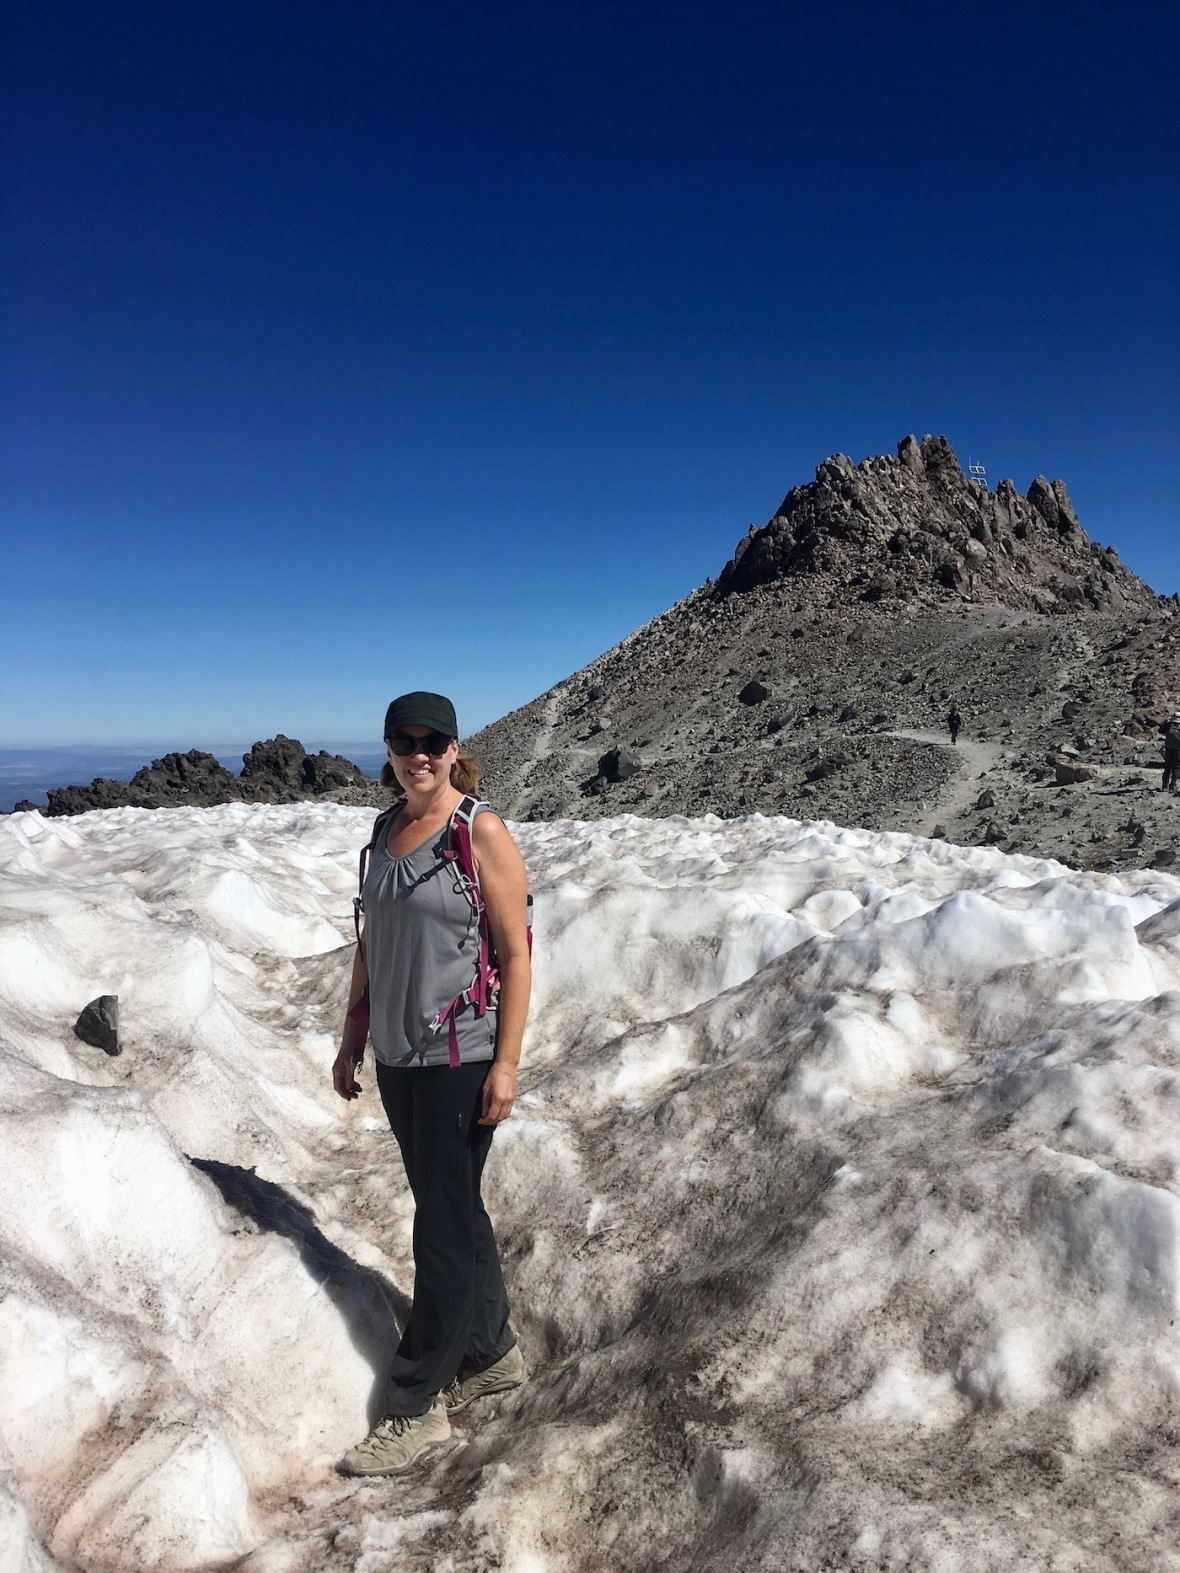 Marsi hiking through permanent snowfield, toward the summit of Lassen Peak in Lassen Volcanic National Park